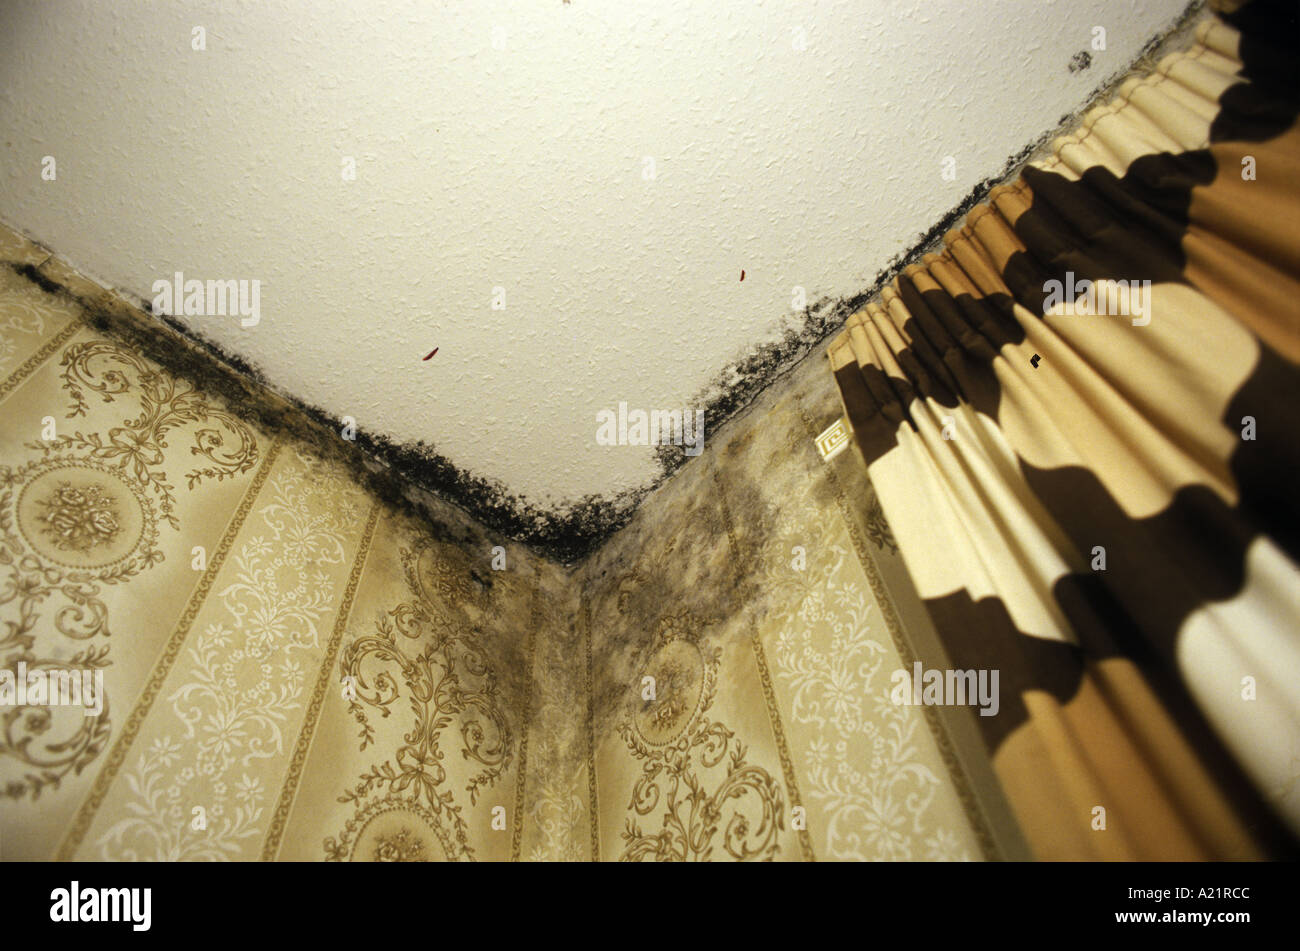 Mould and damp. Poor housing conditions. - Stock Image